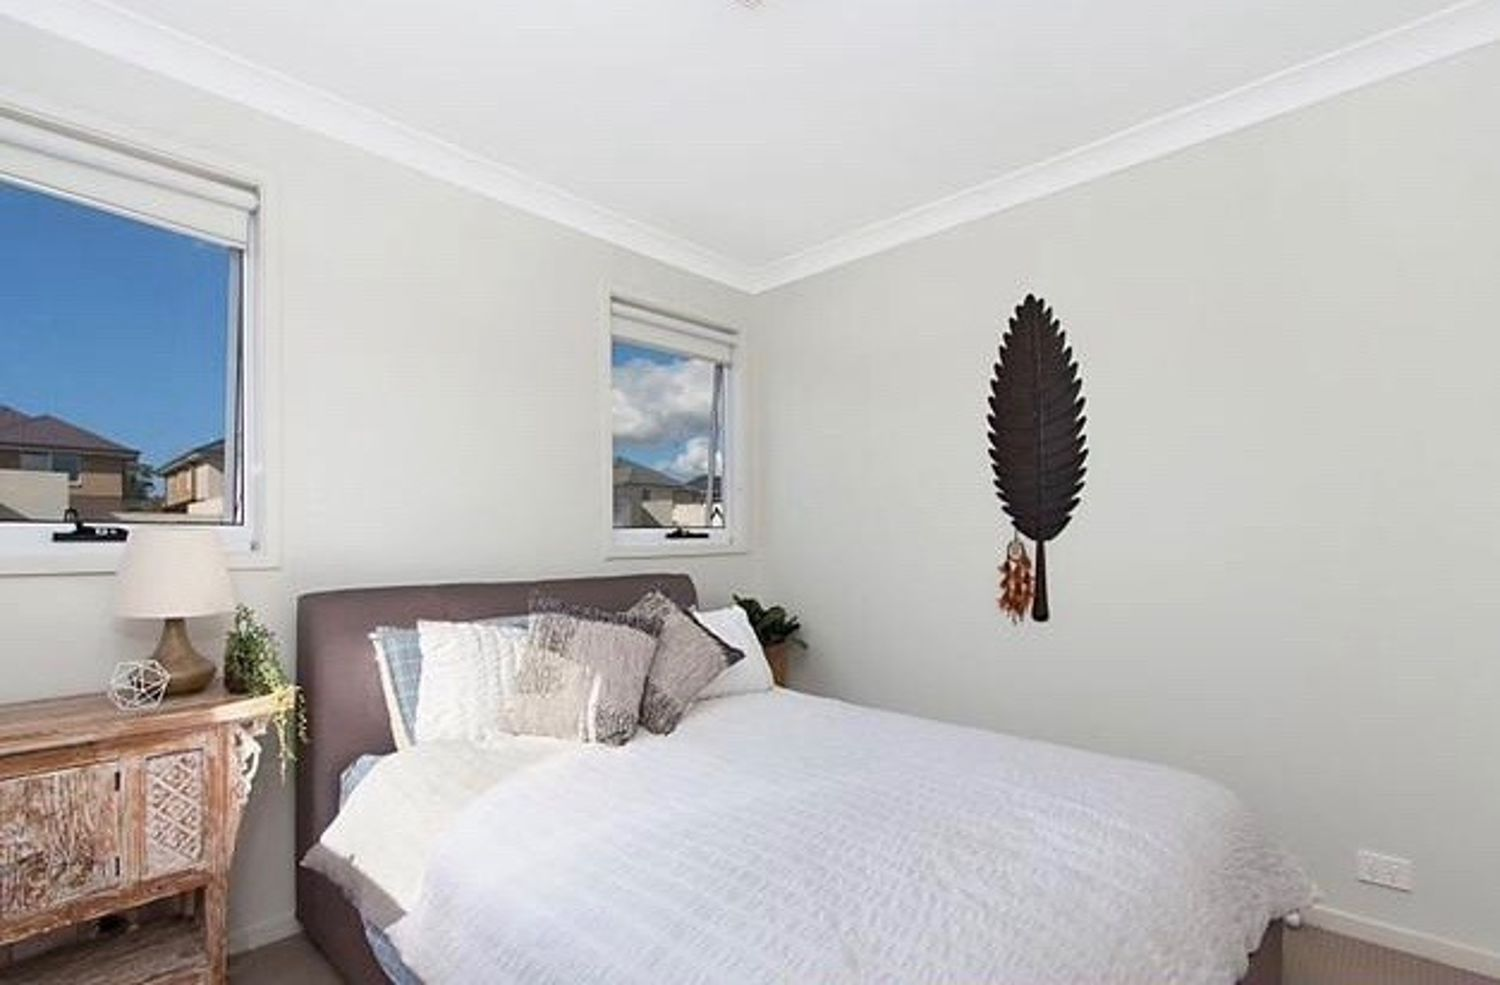 24 A Claret Street, The Ponds NSW 2769, Image 1